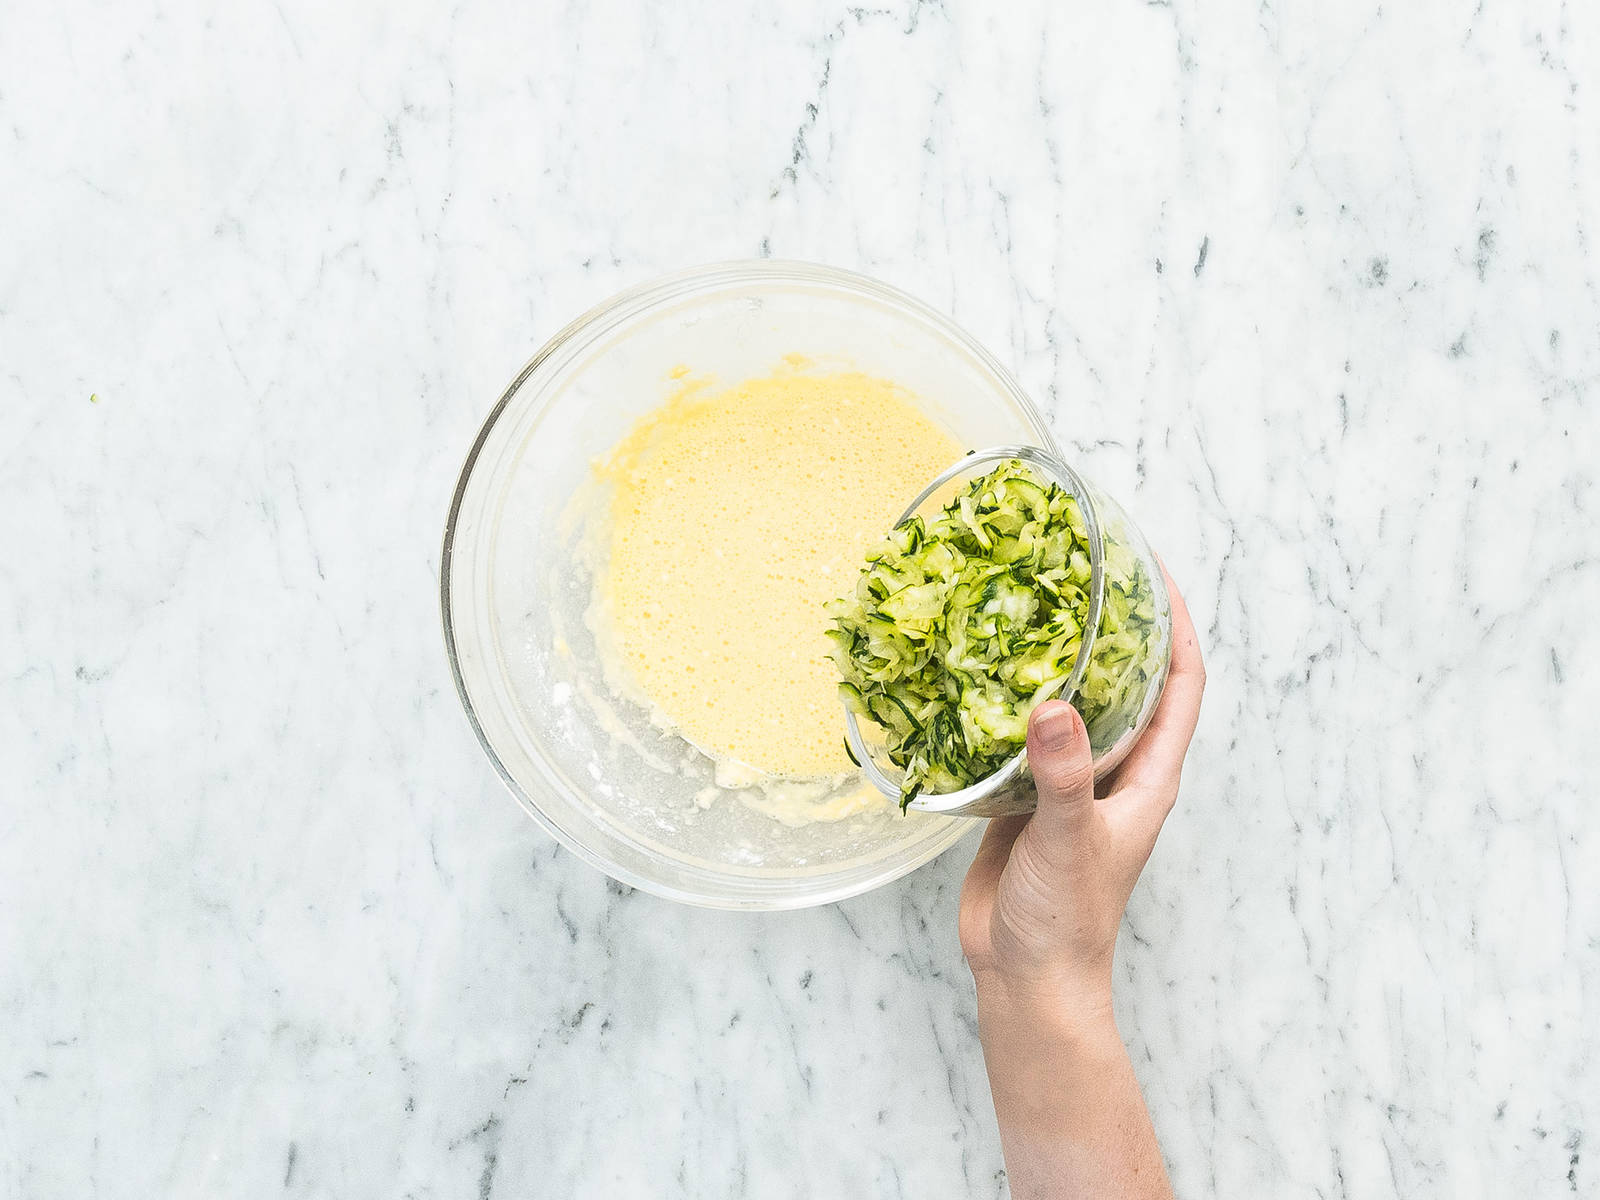 Whisk the eggs, flour, and a pinch of sugar in a mixing bowl. Mix in the grated zucchini.